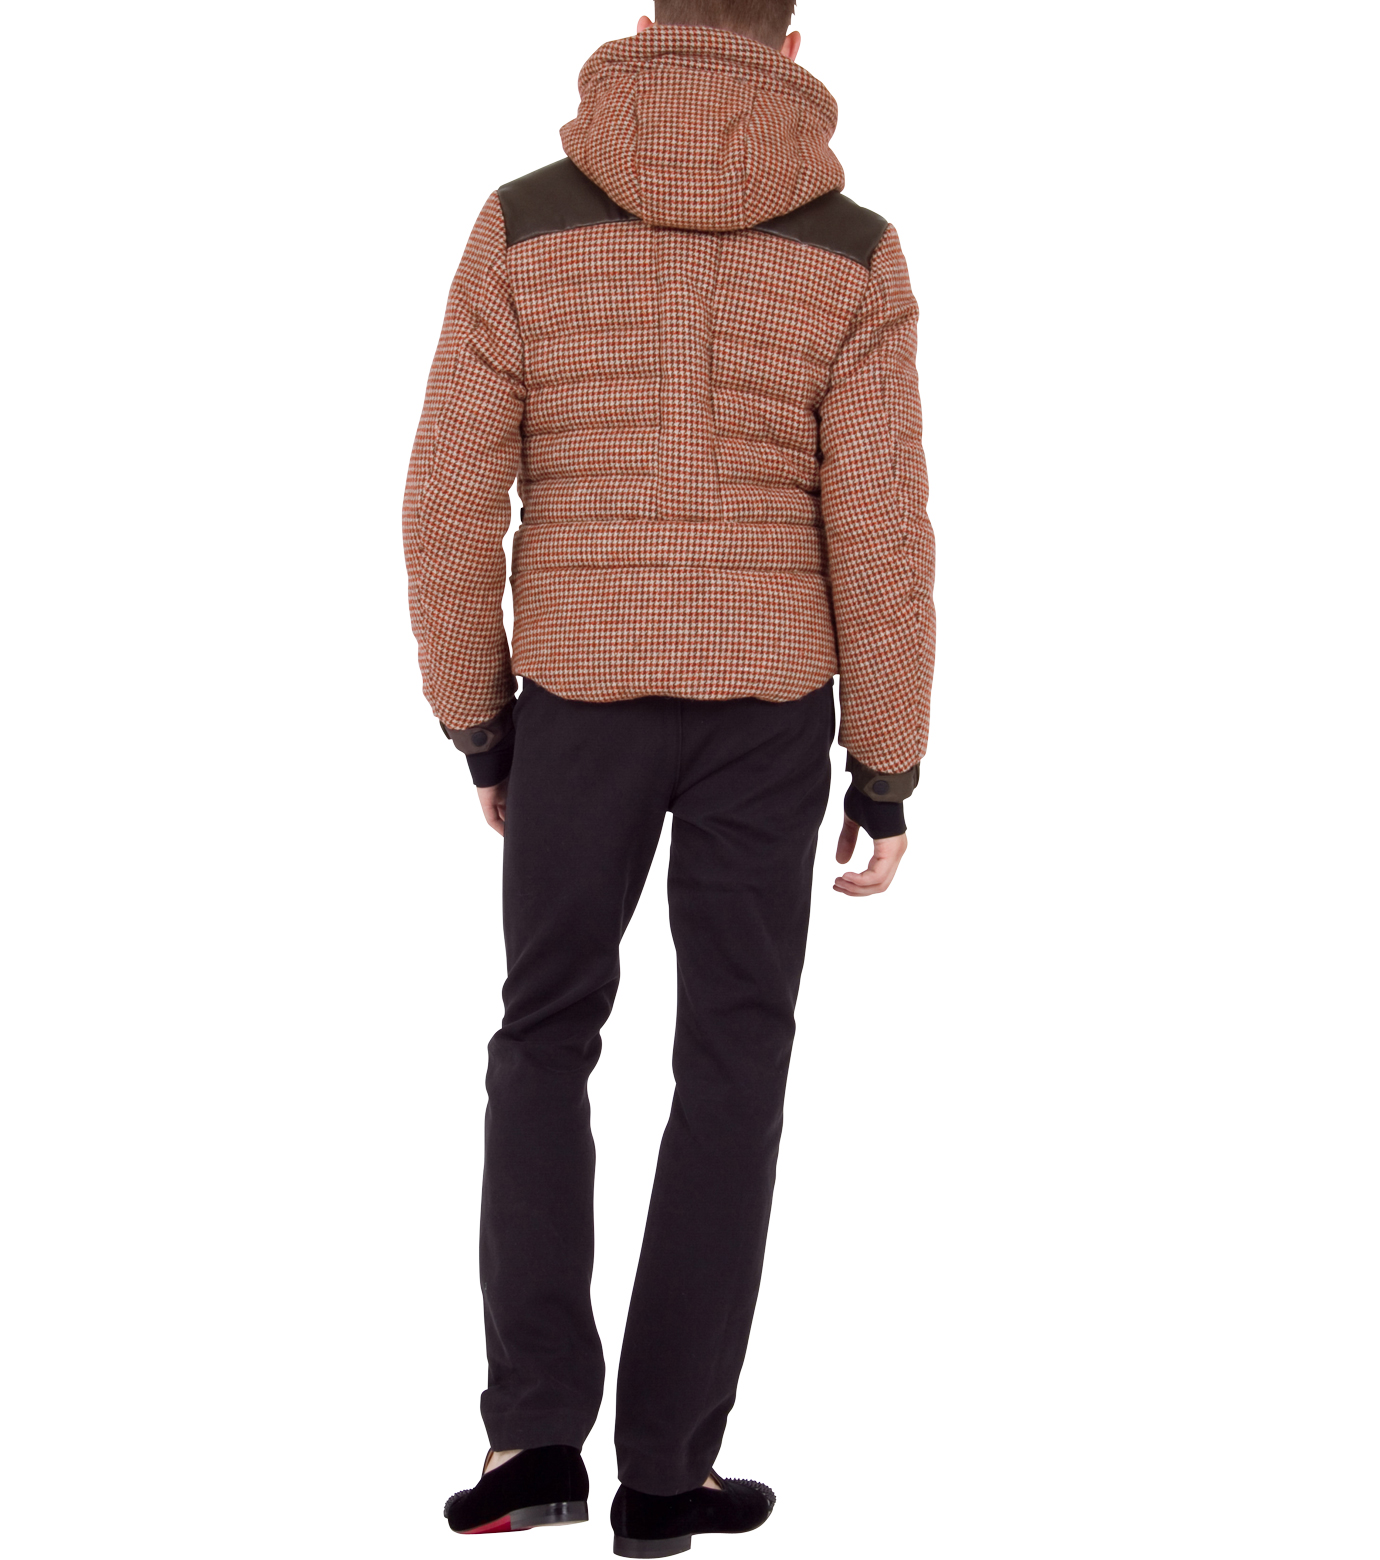 Moncler Grenoble(モンクレールグルノーブル)のCheck down-RED-41911-85-62 拡大詳細画像4